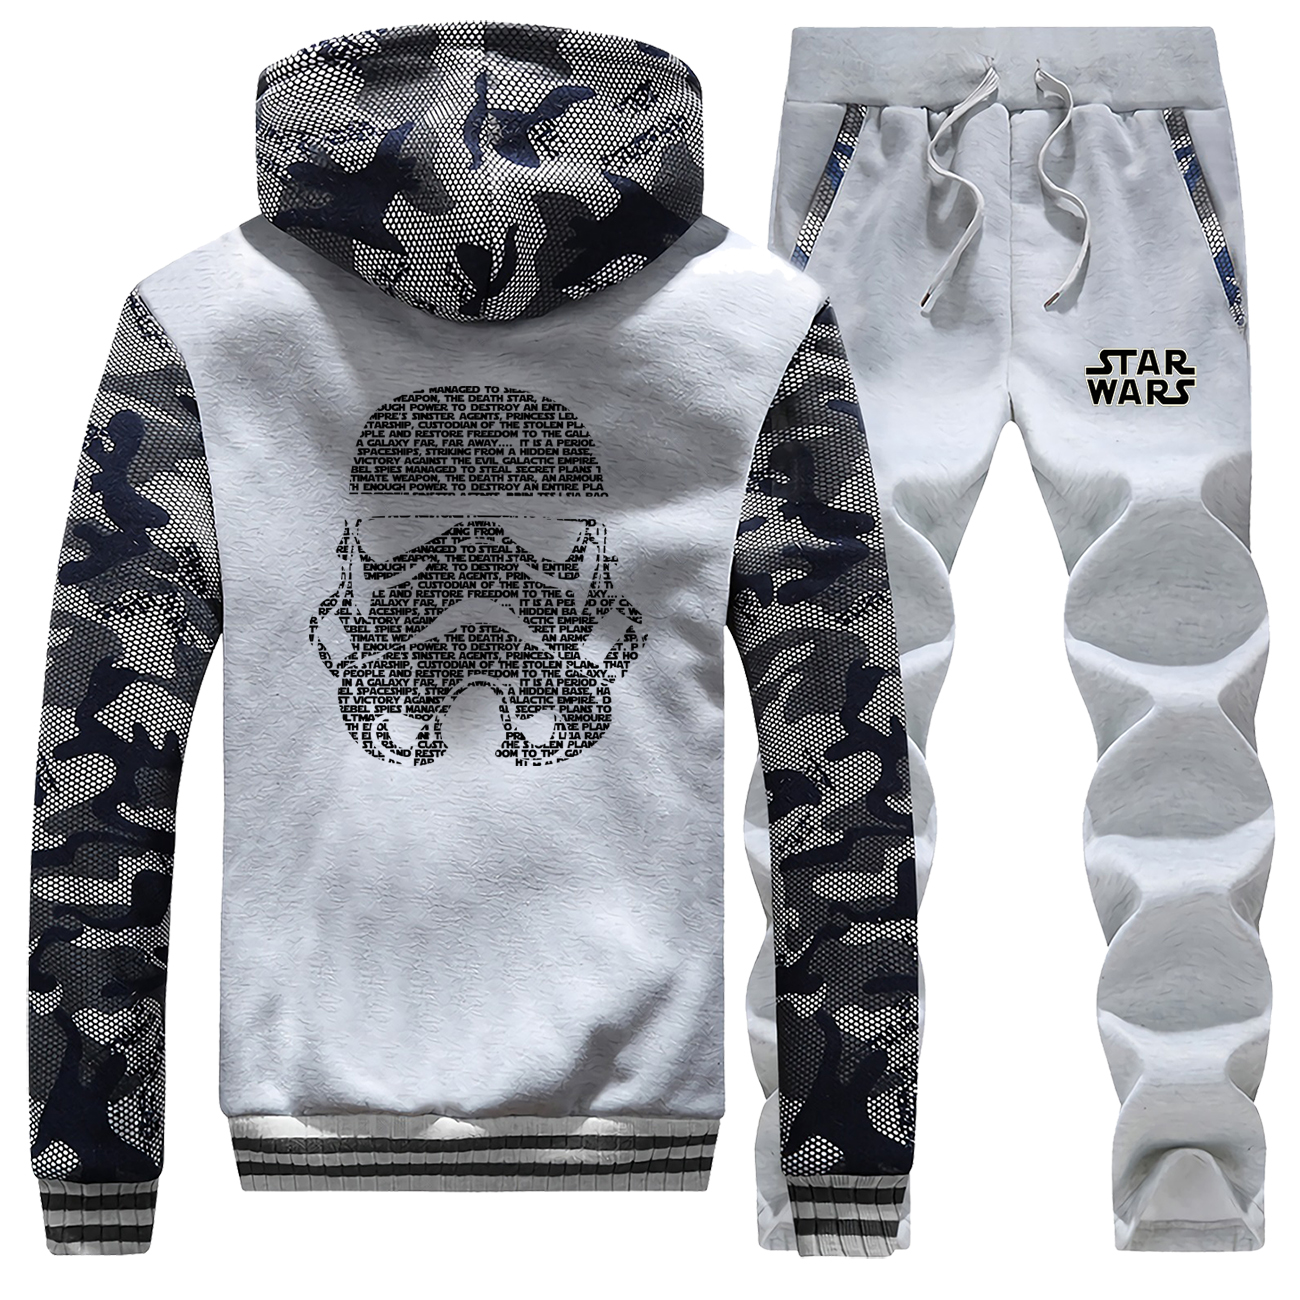 Star Wars Camouflage Hoodie Outerwear Men Winter Hoodies  Autumn Winter Warm Printed Pullover Tracksuit Jacket + Sweatpants Suit